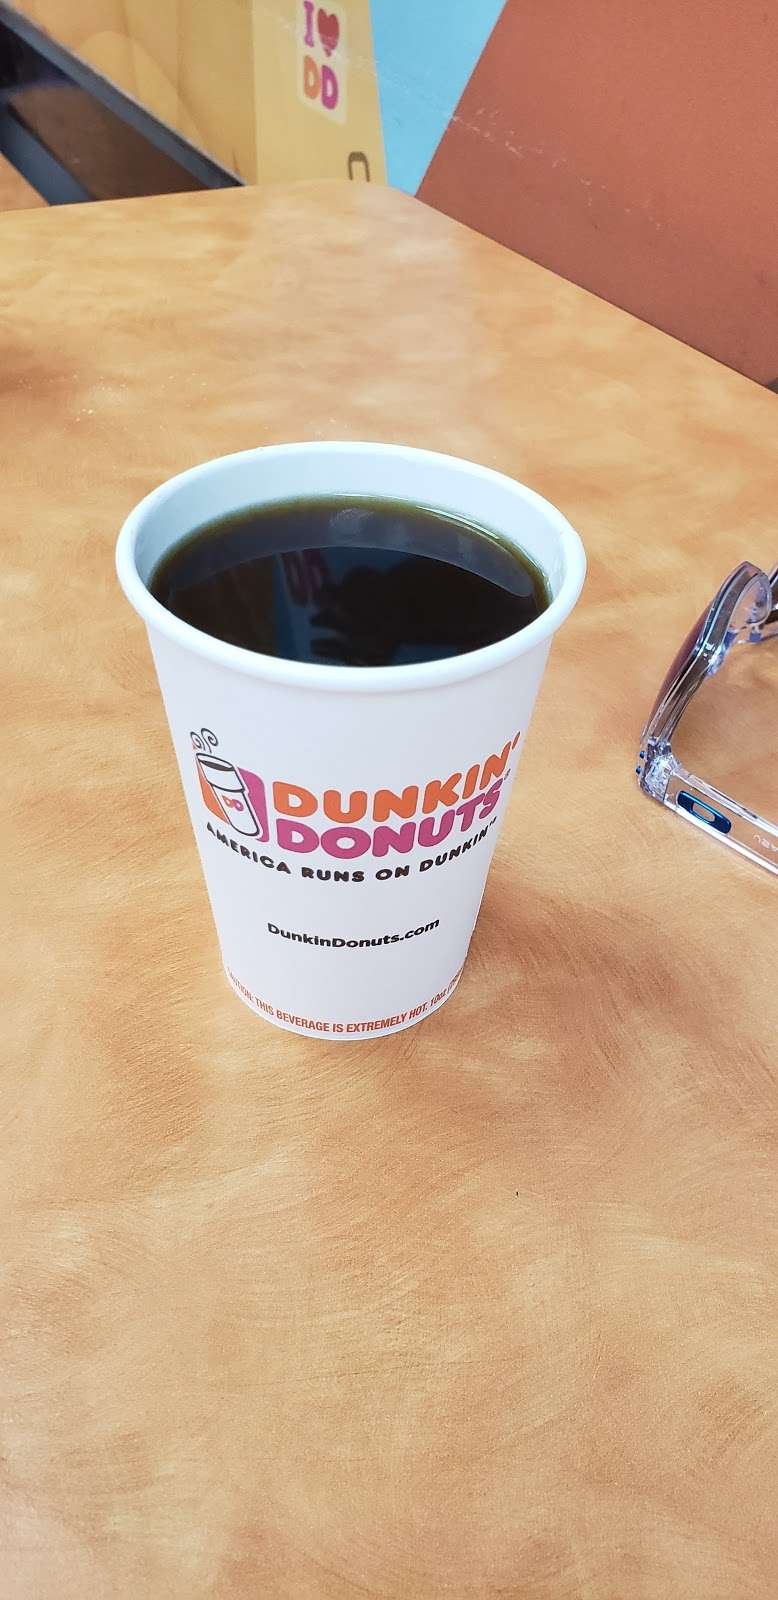 Dunkin Donuts - cafe  | Photo 6 of 10 | Address: 2241 Southern Blvd, Bronx, NY 10458, USA | Phone: (718) 220-4946